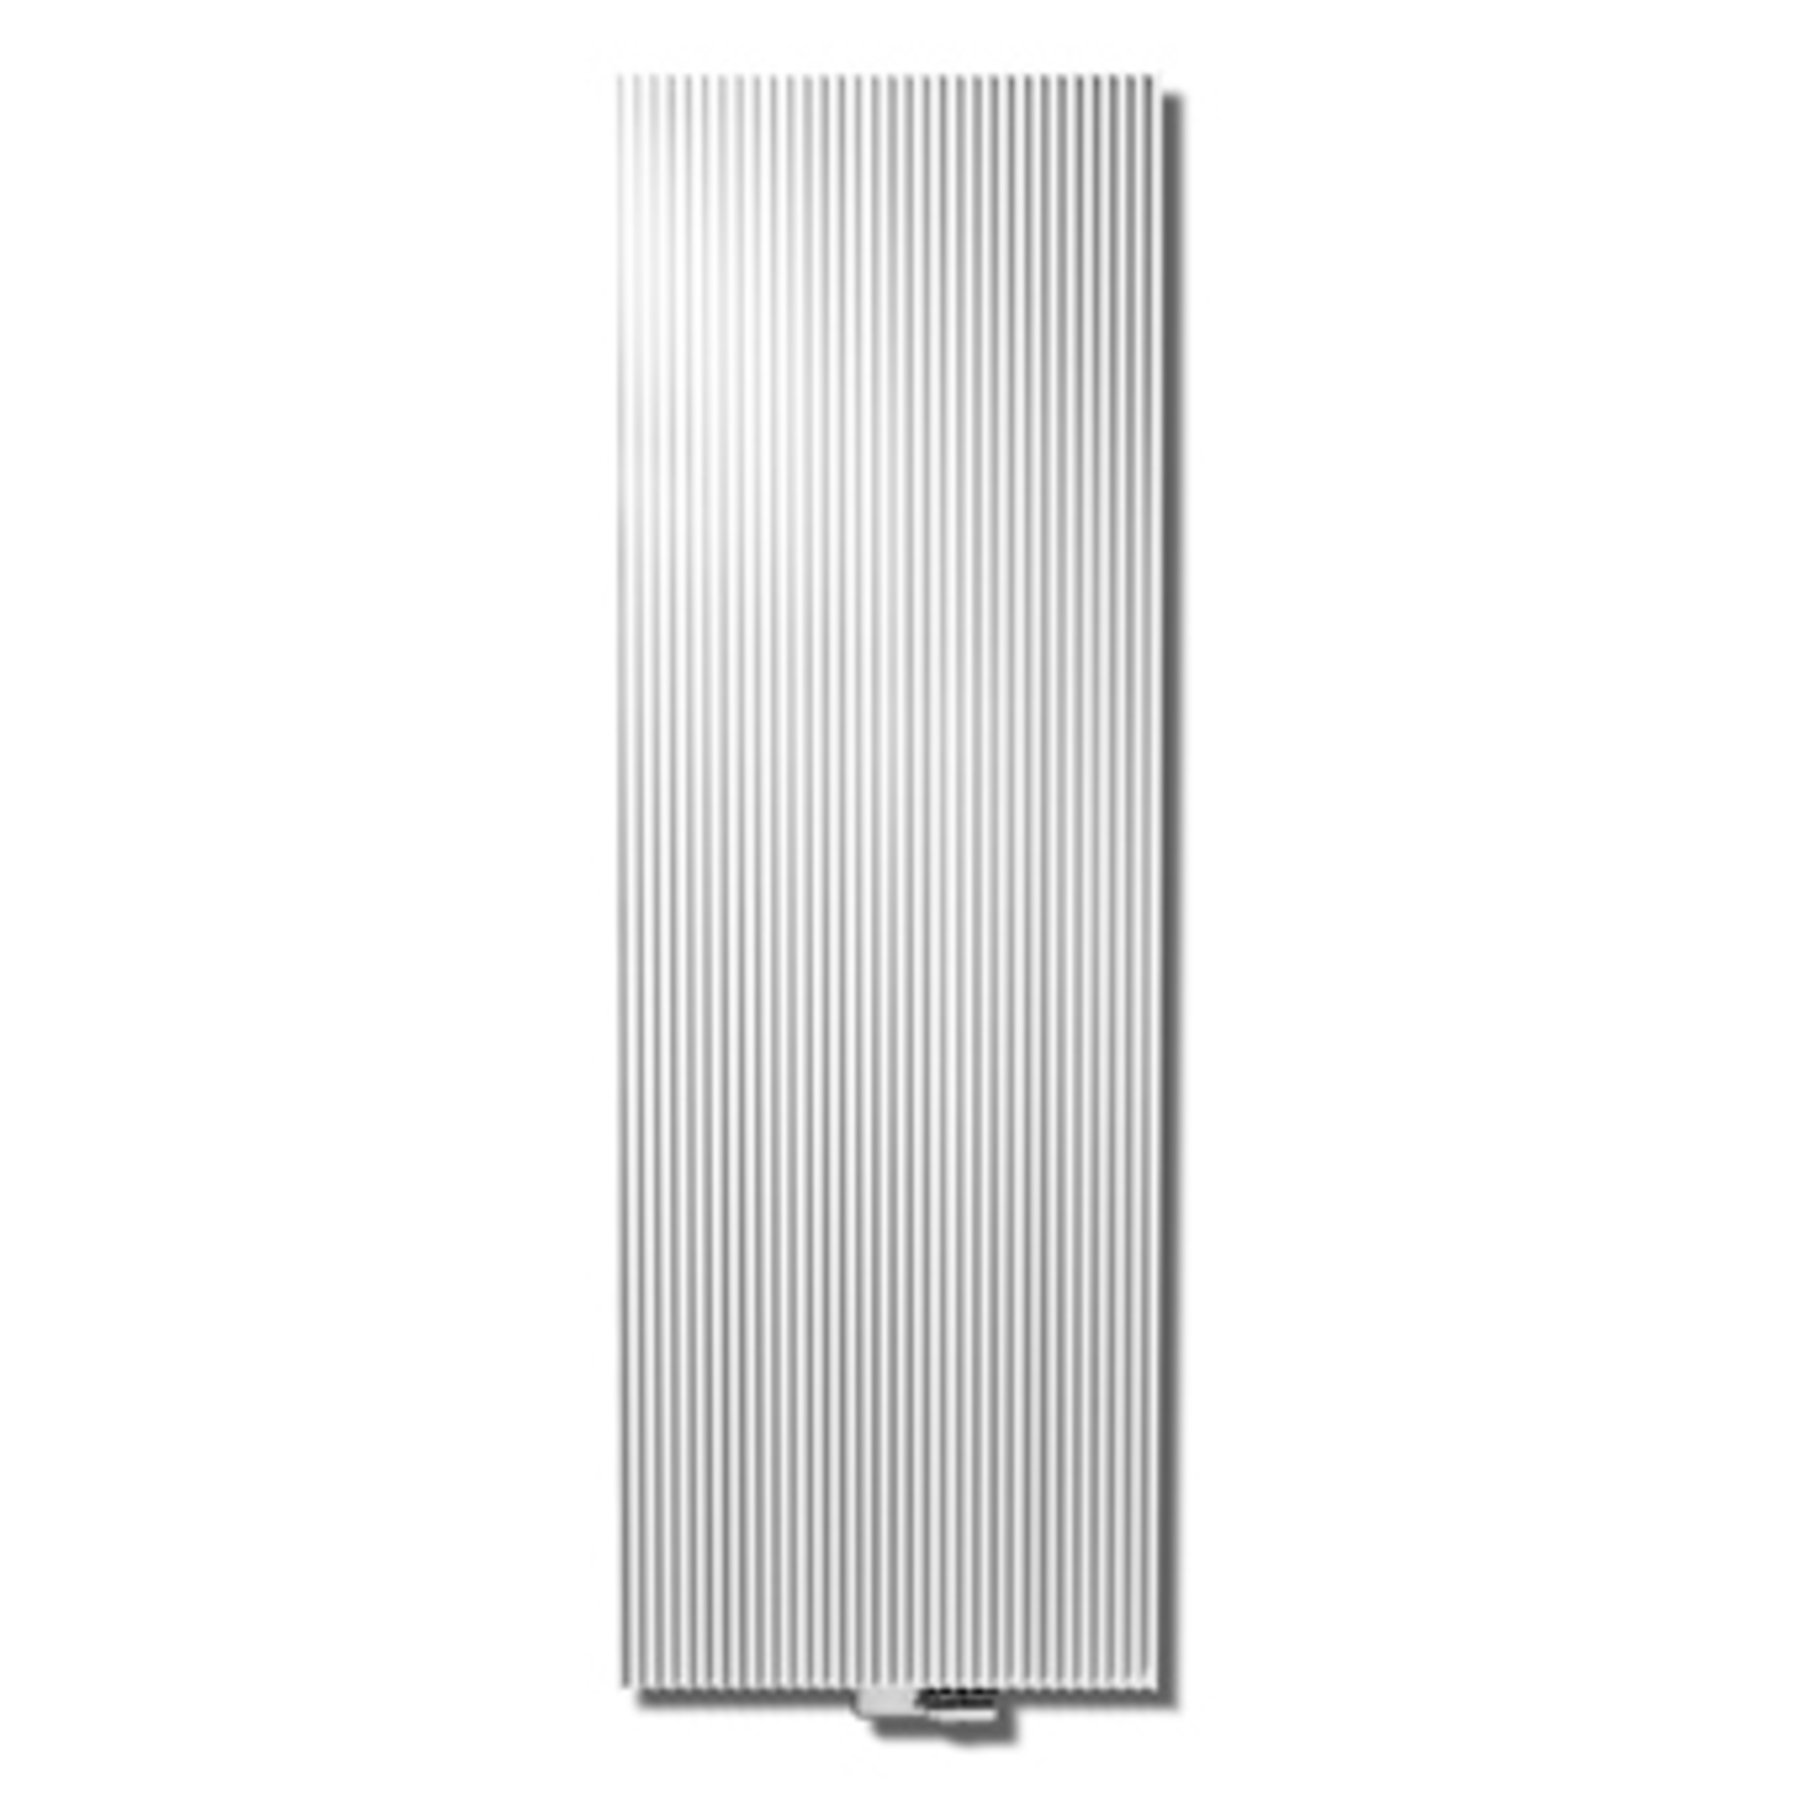 Vasco Canyon designradiator vertikaal 605x1600mm 1922 watt wit structuur (S600)